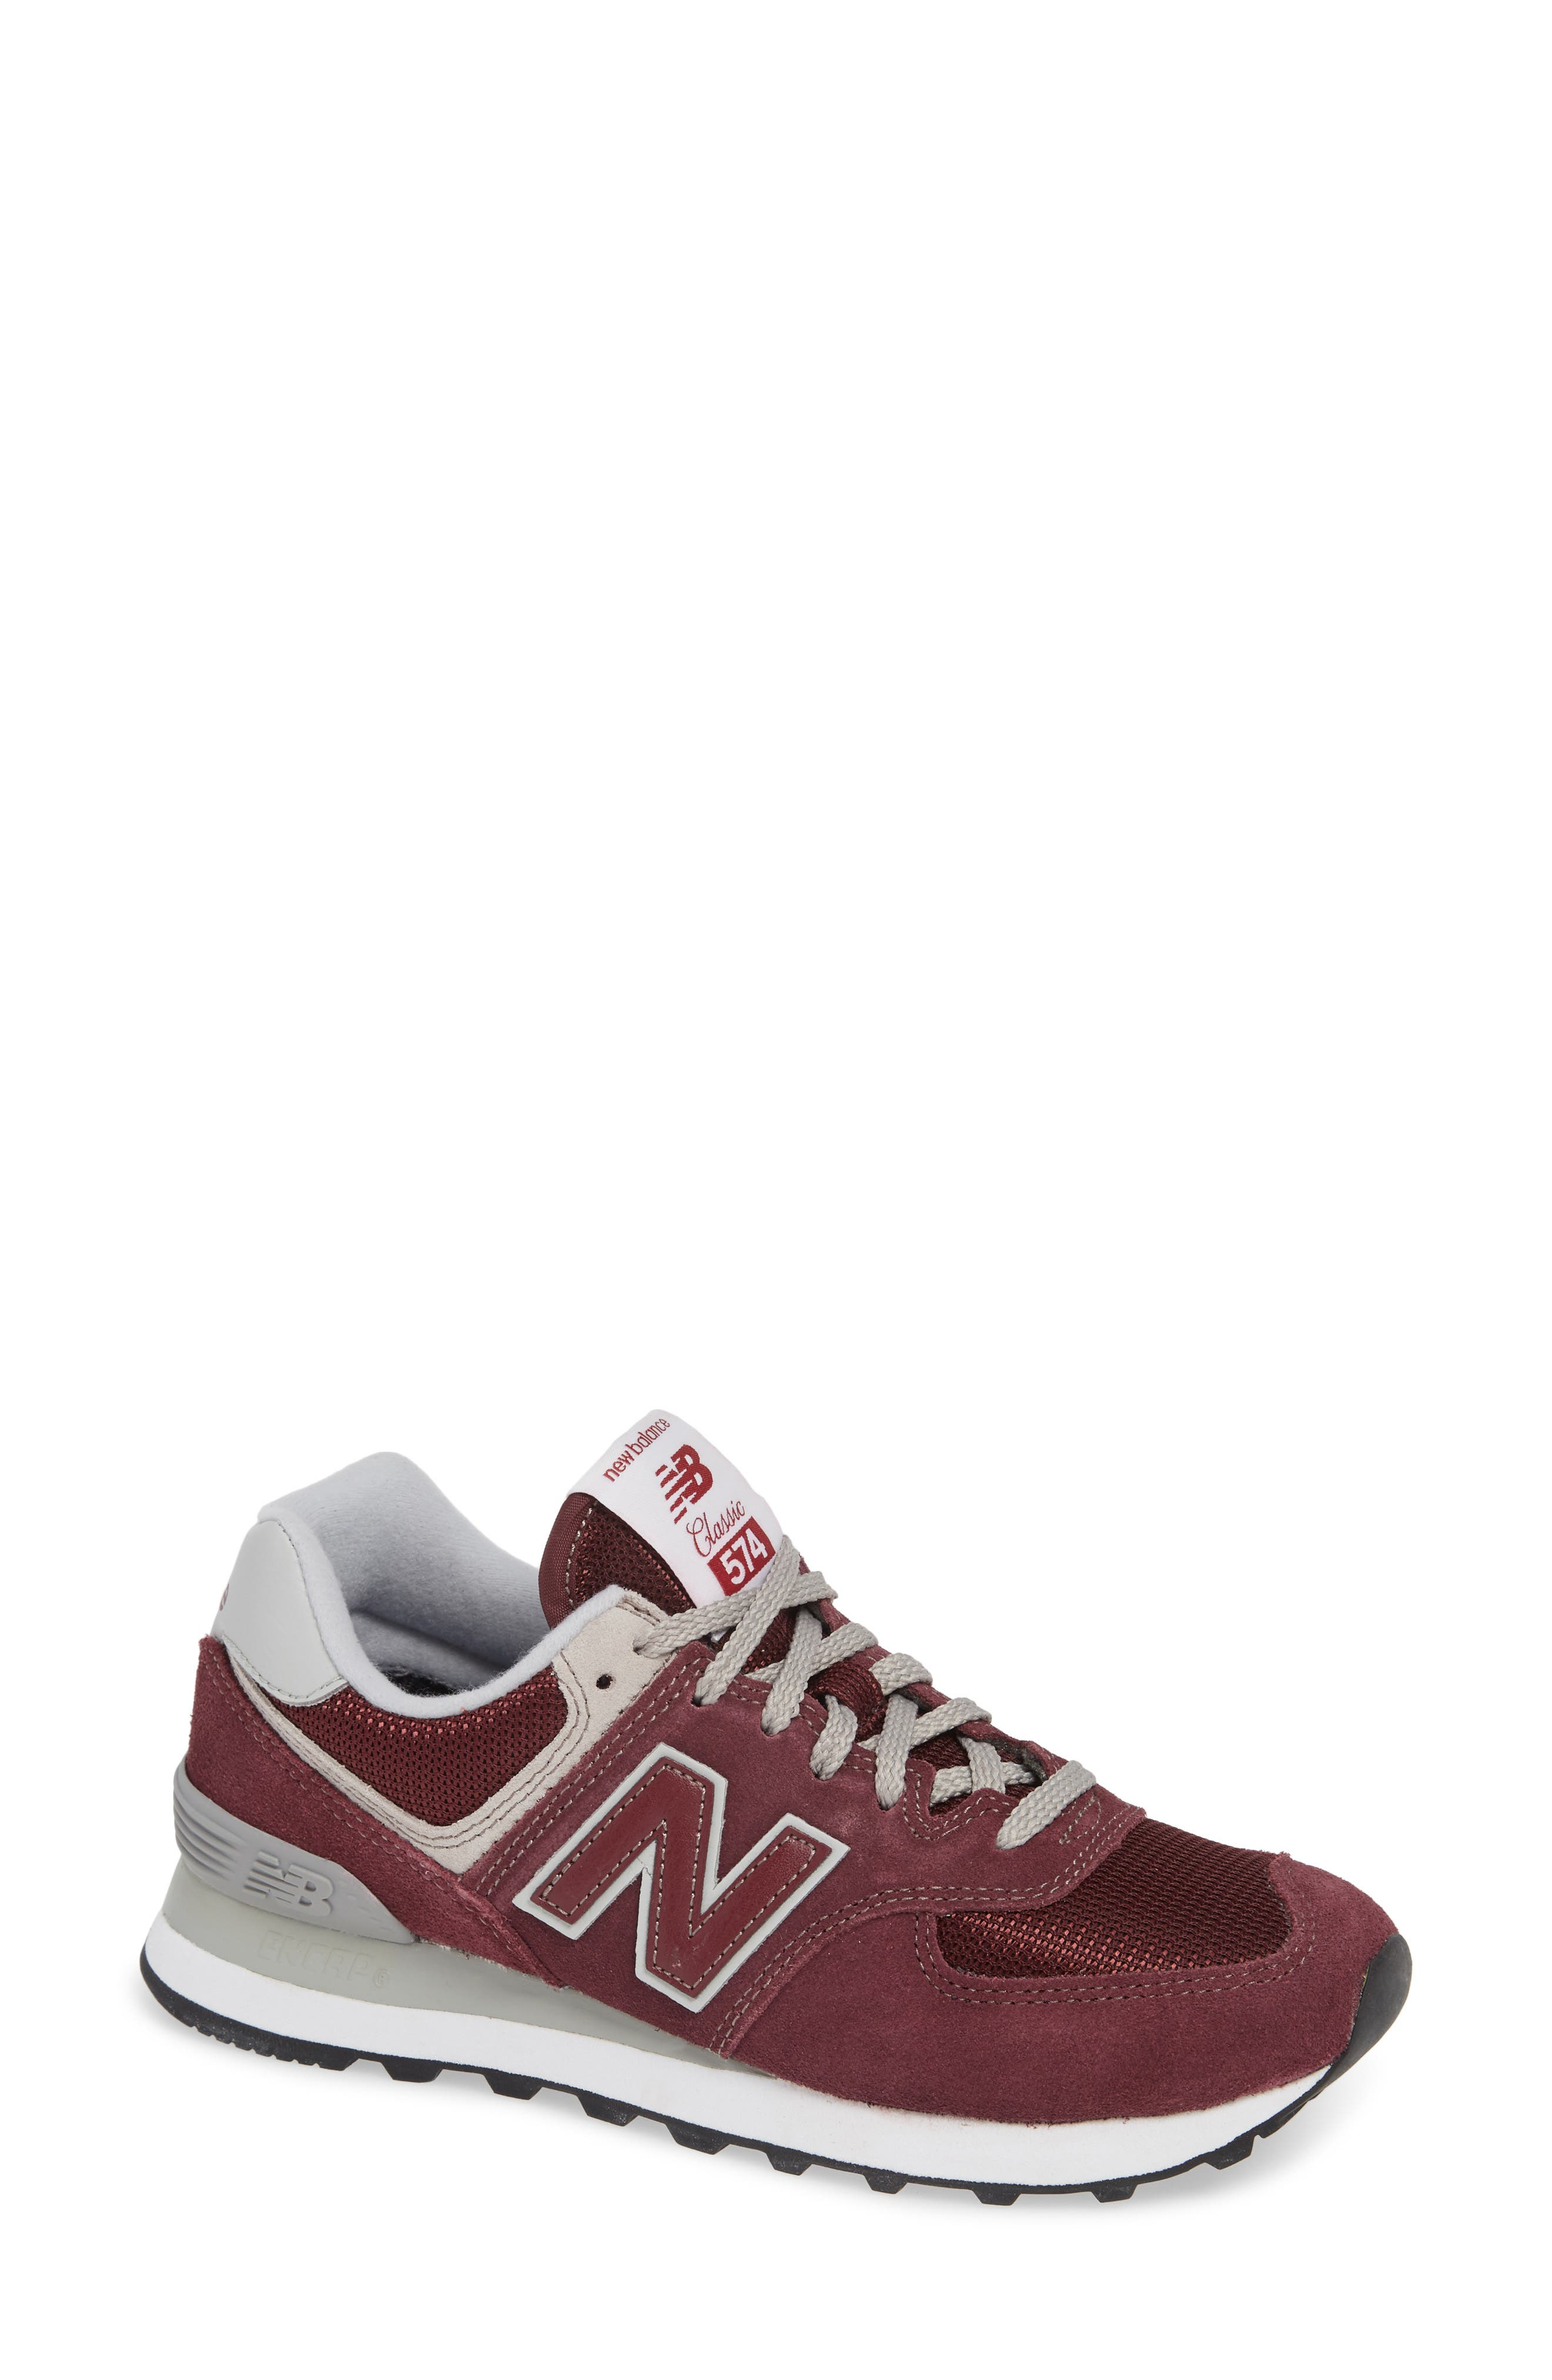 Shoes New Balance Women's Sneakers Nordstrom wHfWtqp